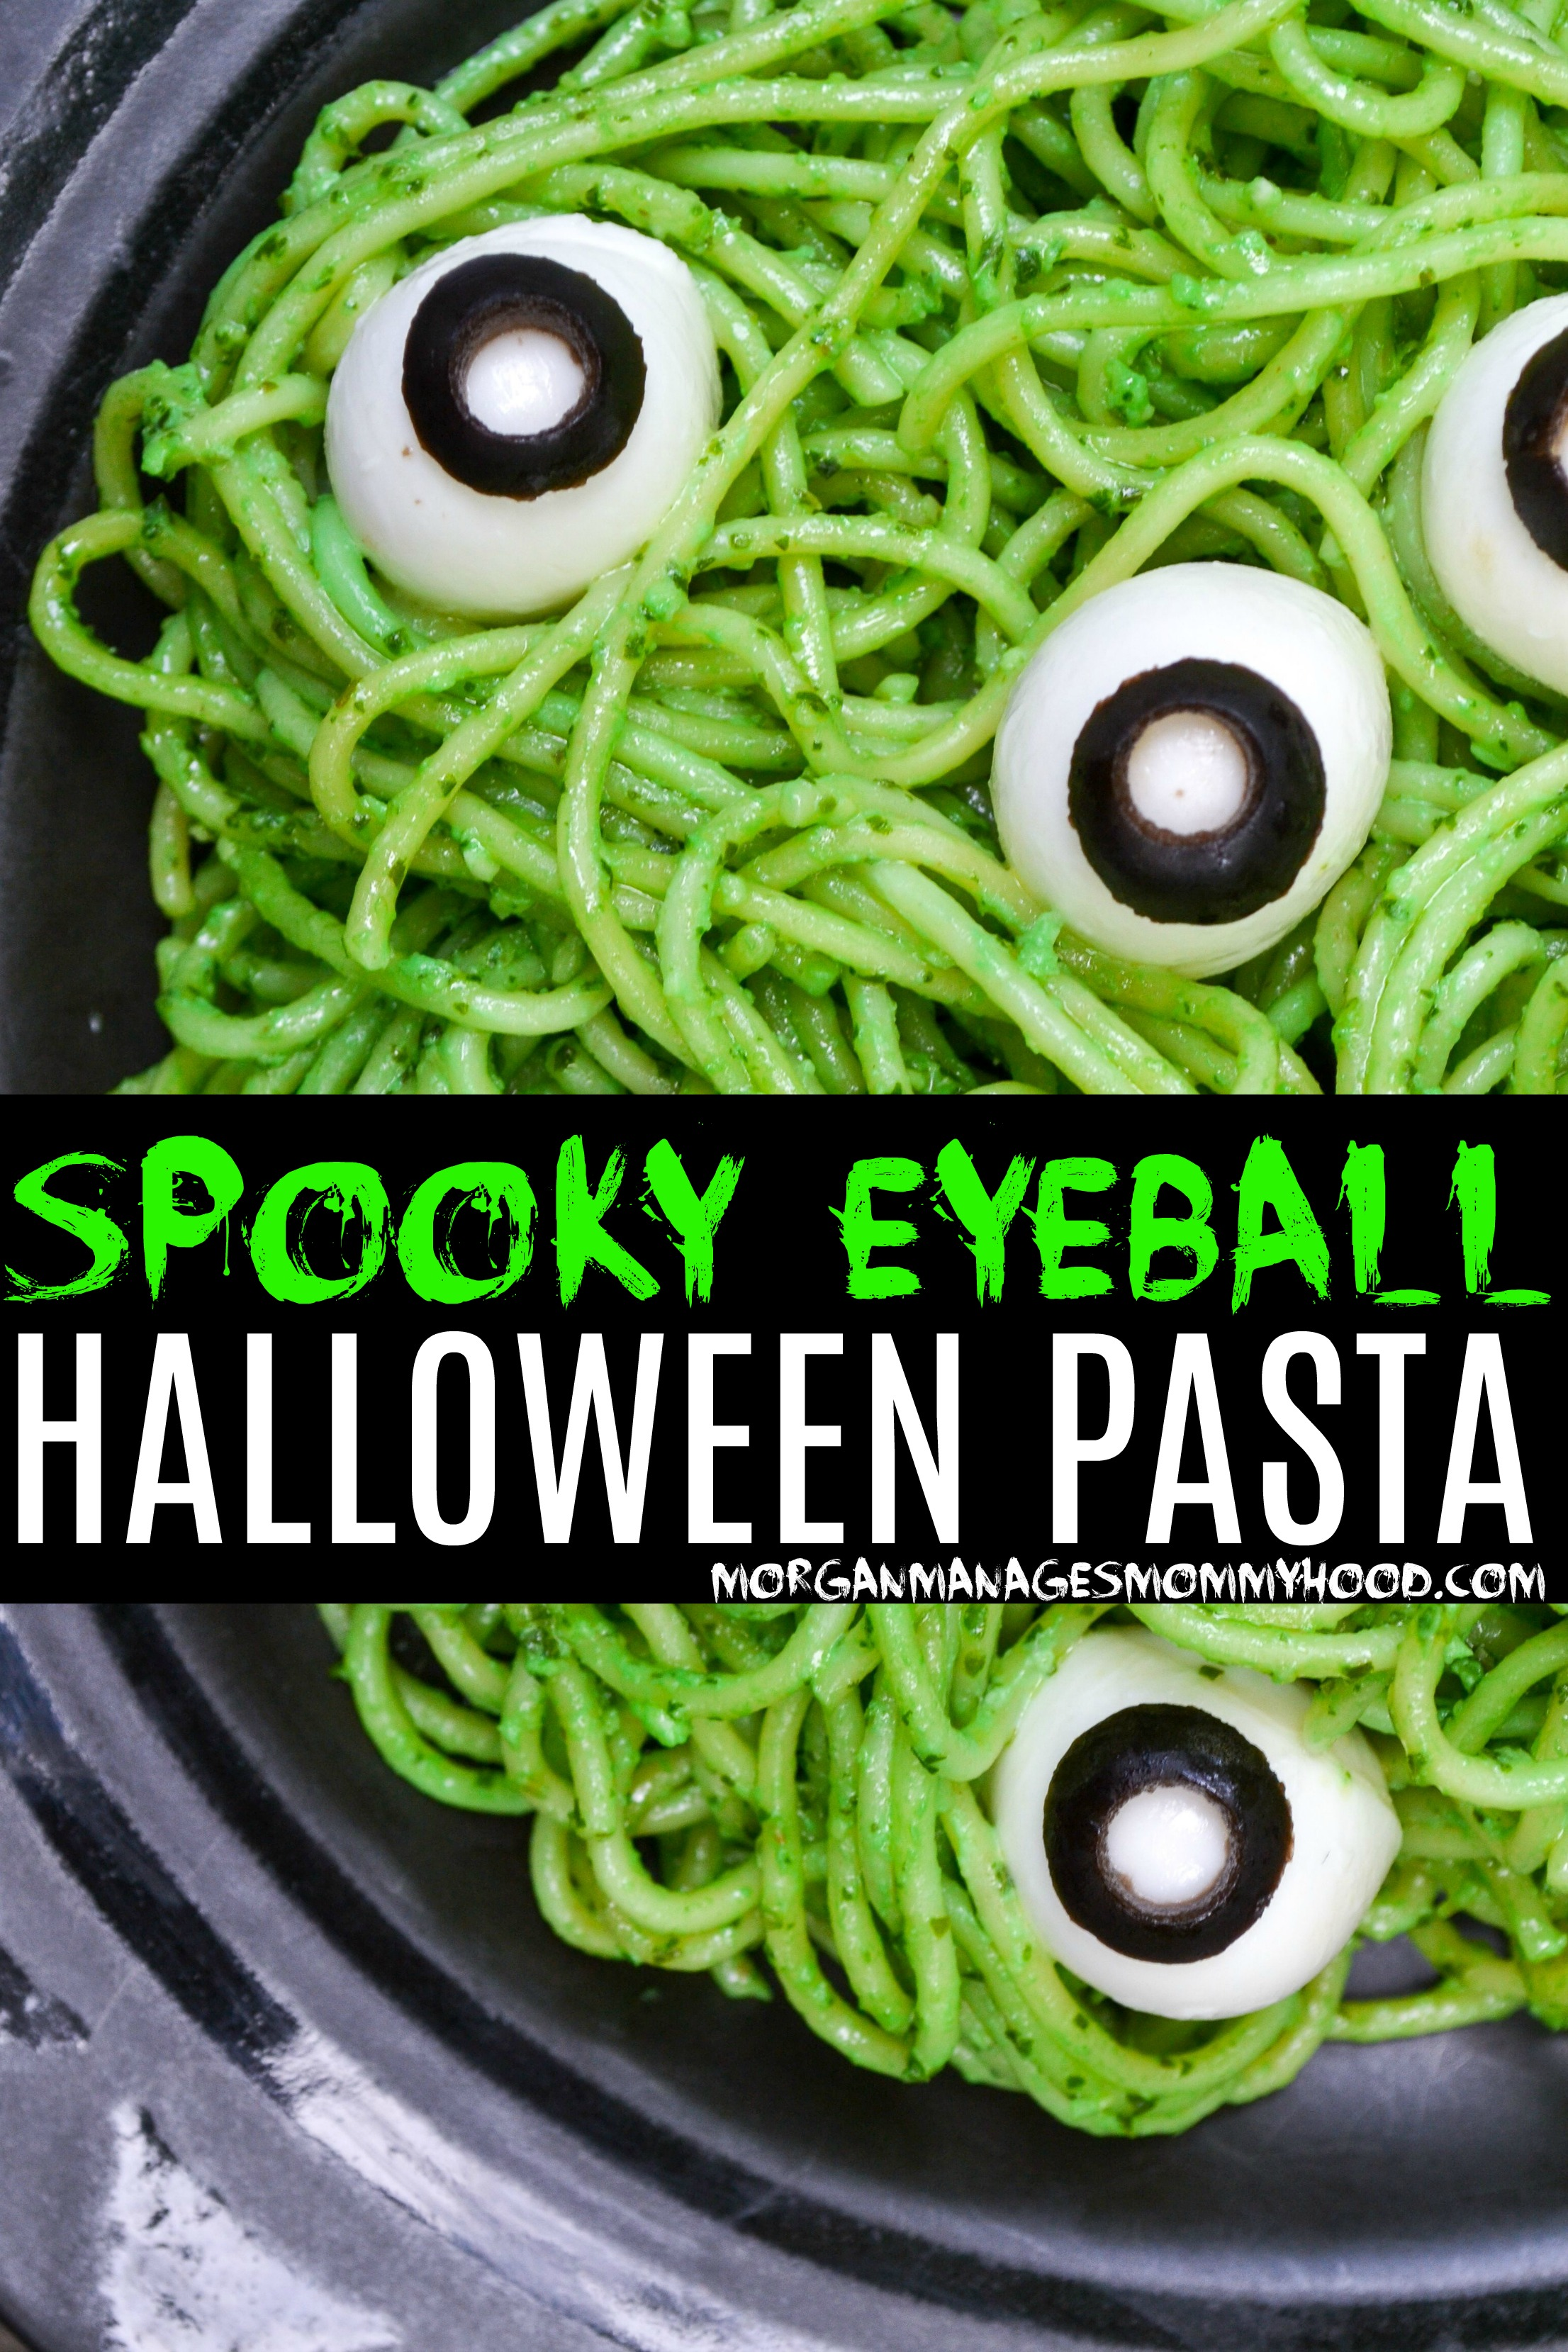 This Halloween pasta recipe is spooky, fun, and the perfect Halloween dinner. An easy dinner to serve before going trick or treating! #halloweenfood #halloweendinner #halloweenpasta #halloween #eyeball #funfood #kidfood #funkidfood